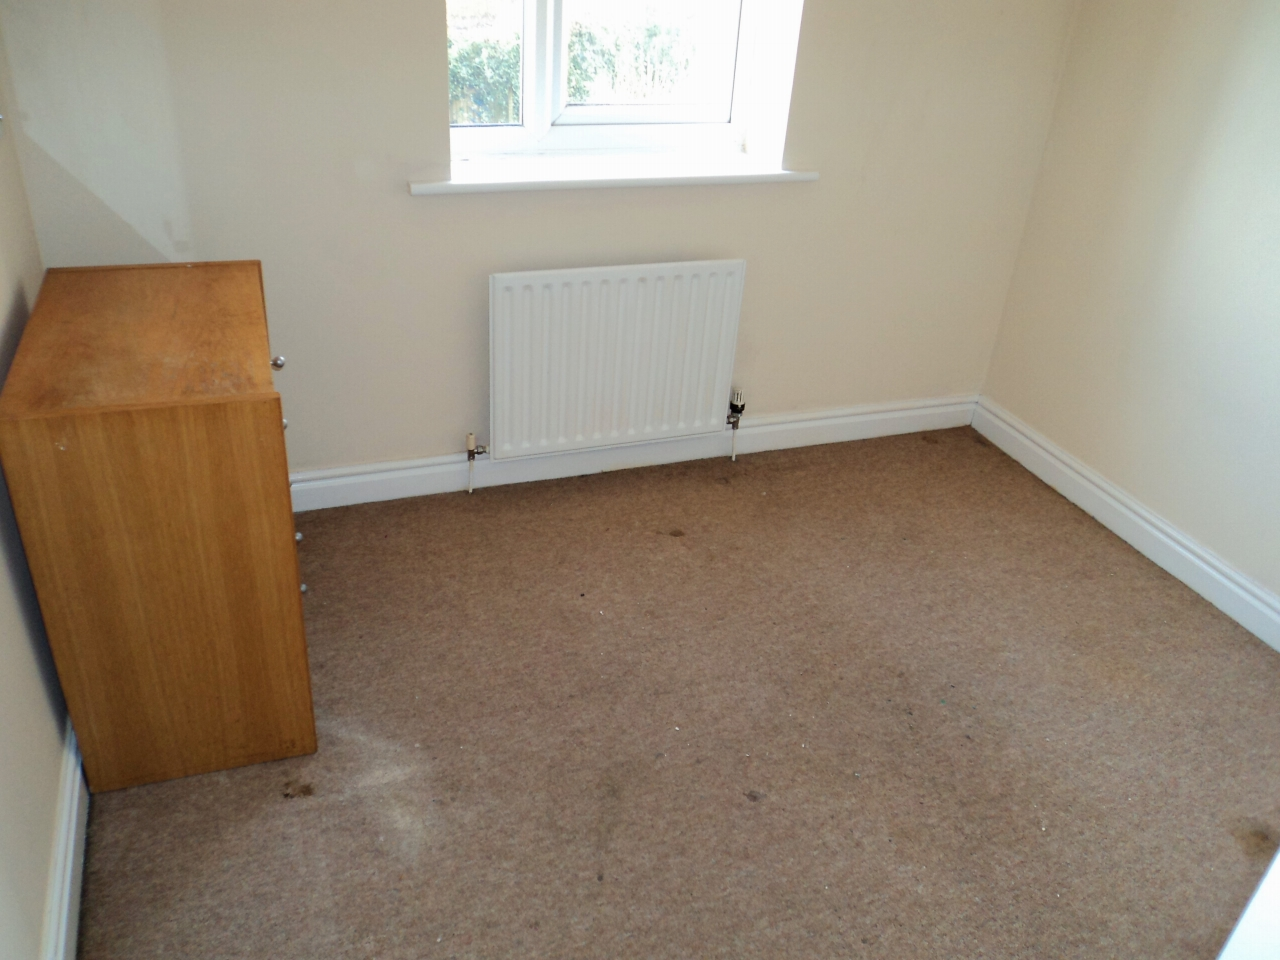 3 Bedroom House For Sale - Image 7